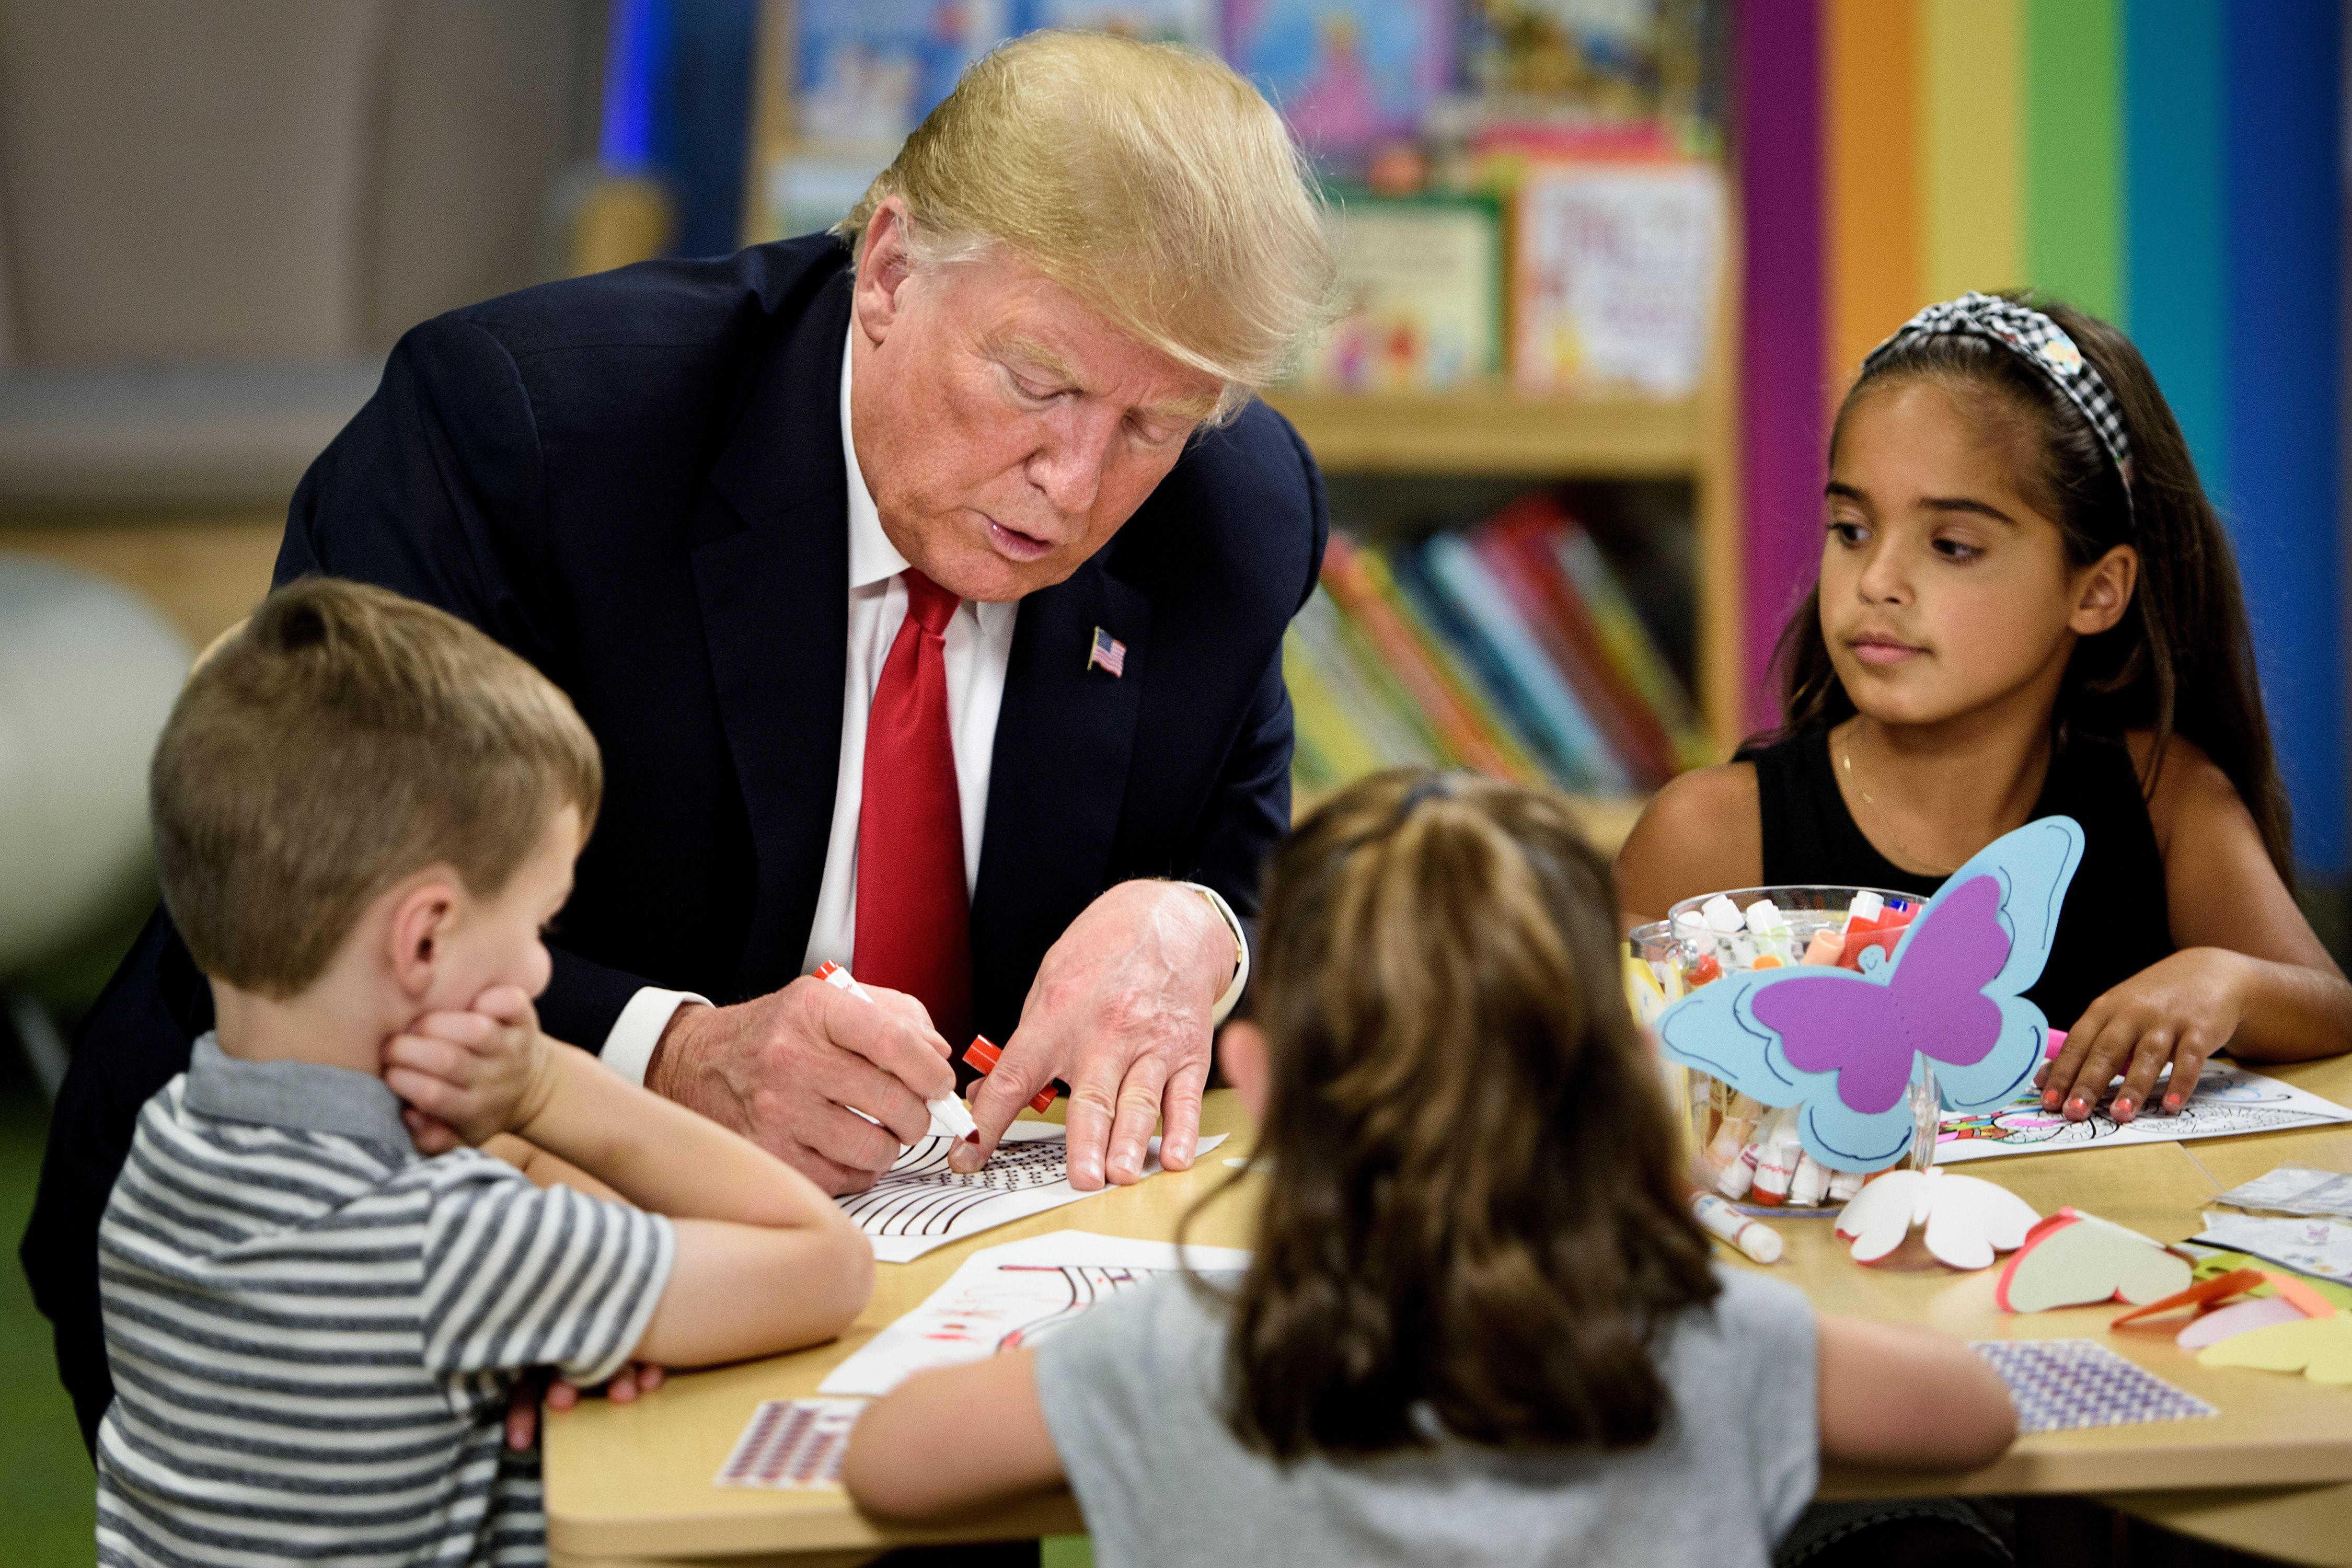 President Donald Trump colors in an American flag while children seated around him look on and color.